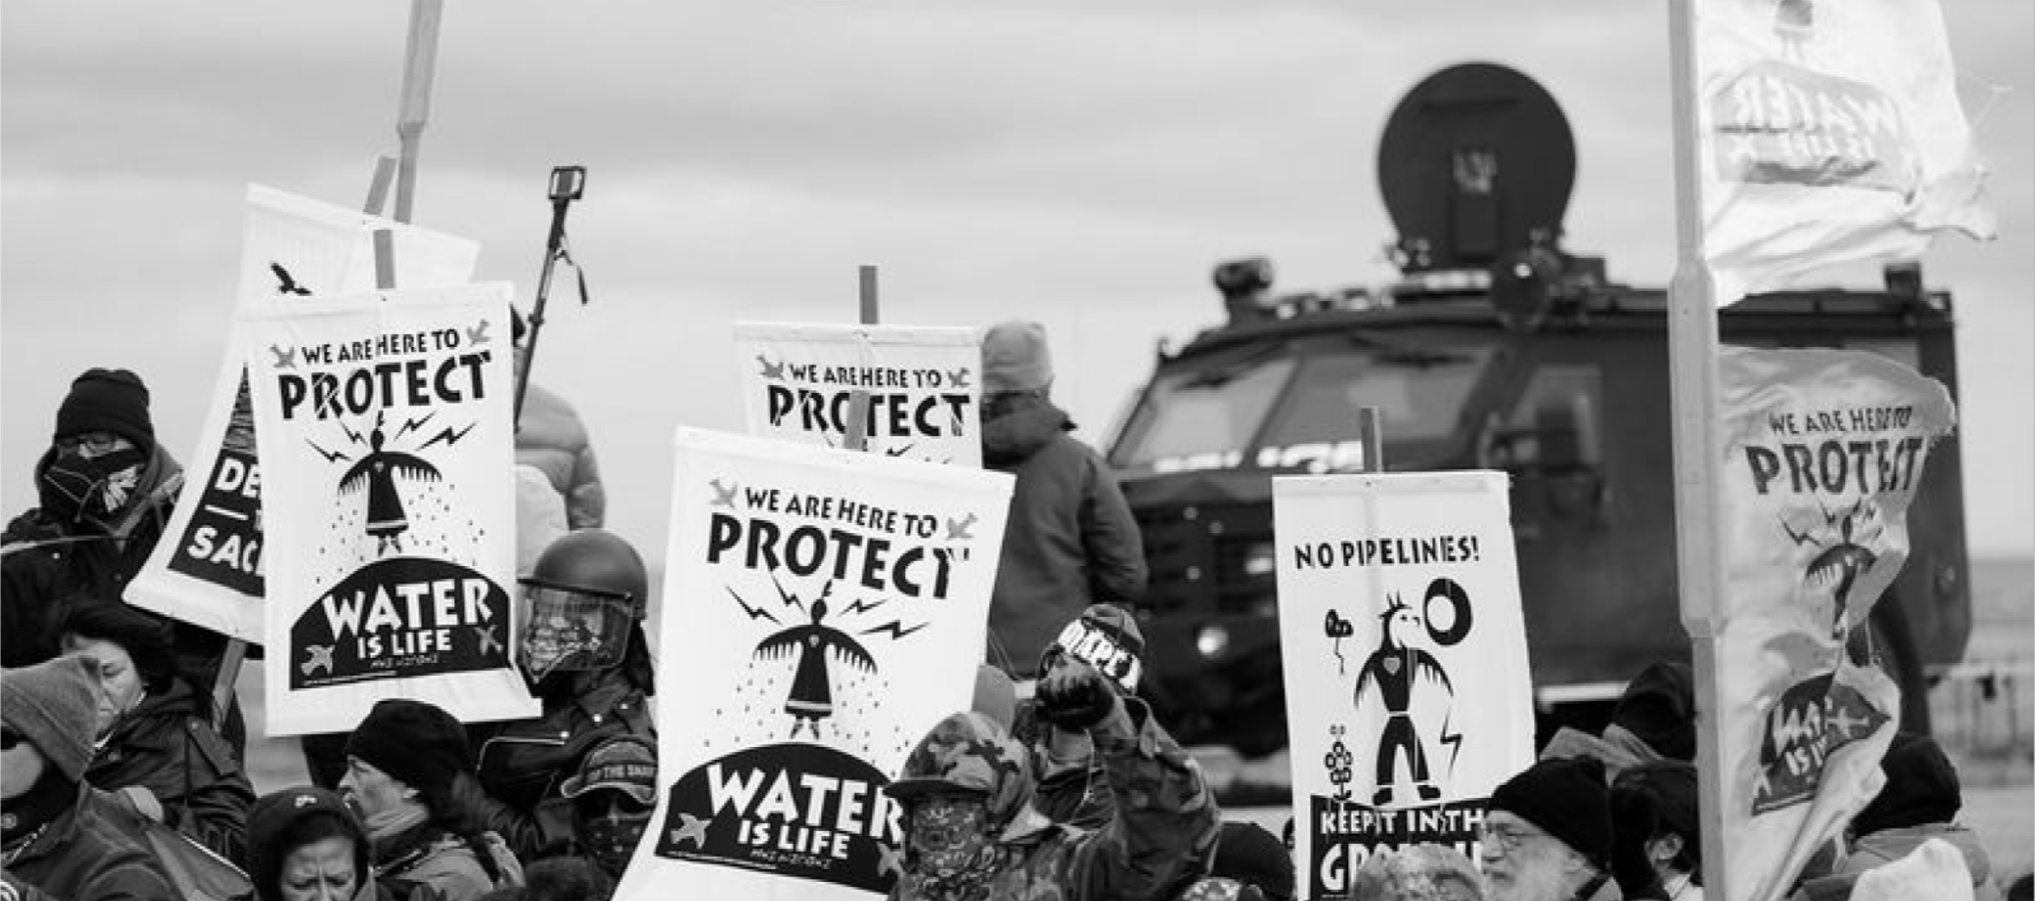 We Must Stand With Standing Rock